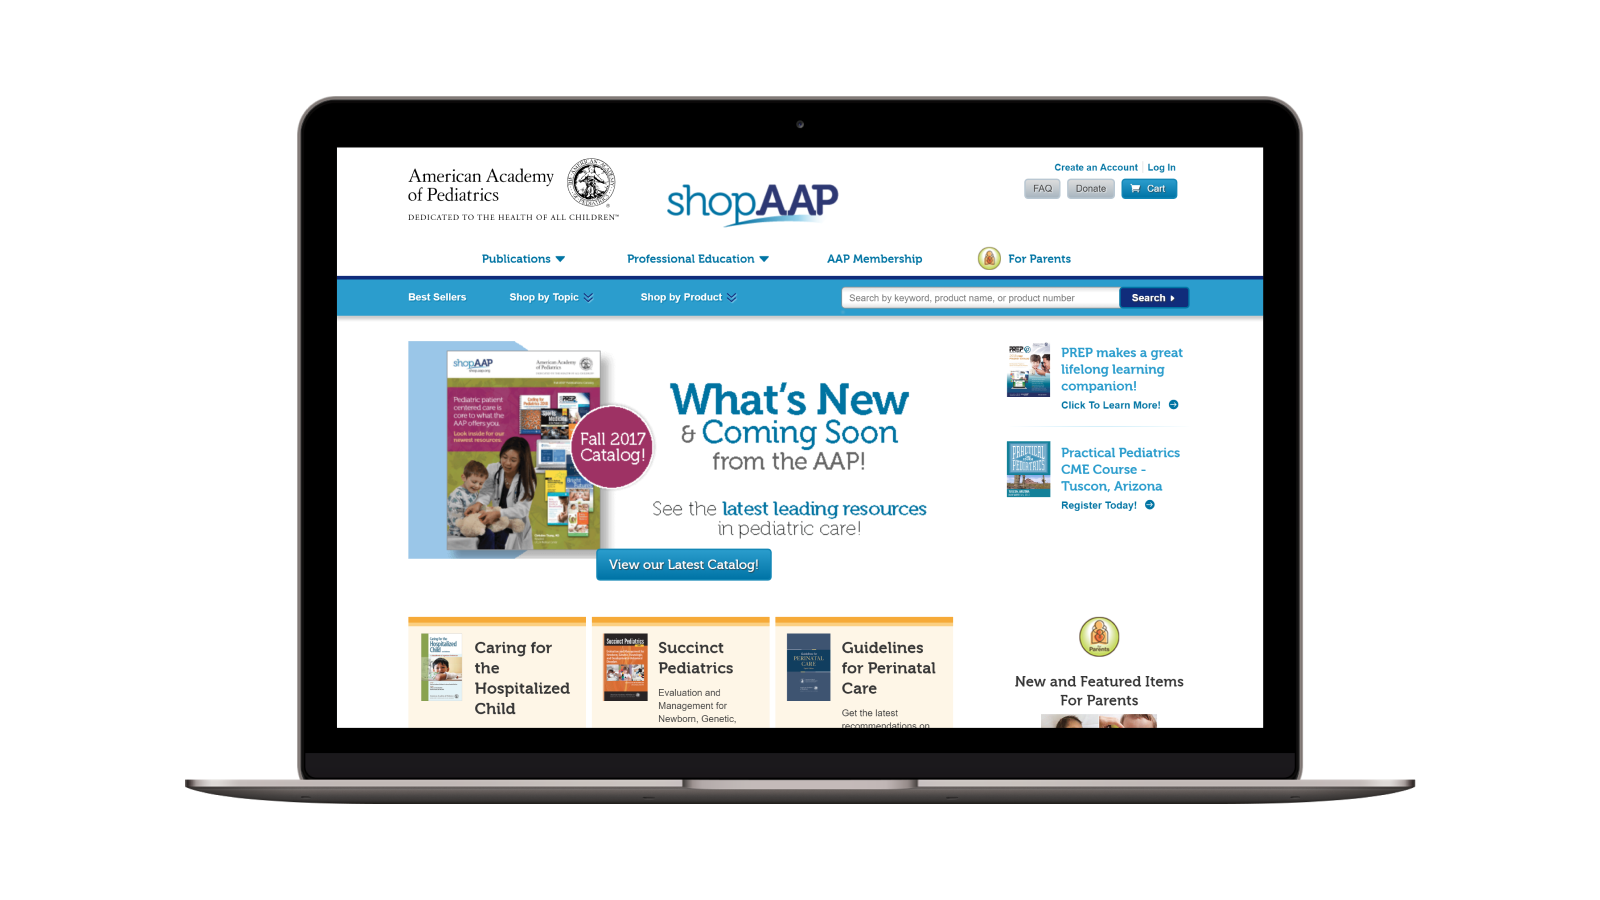 American Academy of Pediatrics Website by Adage